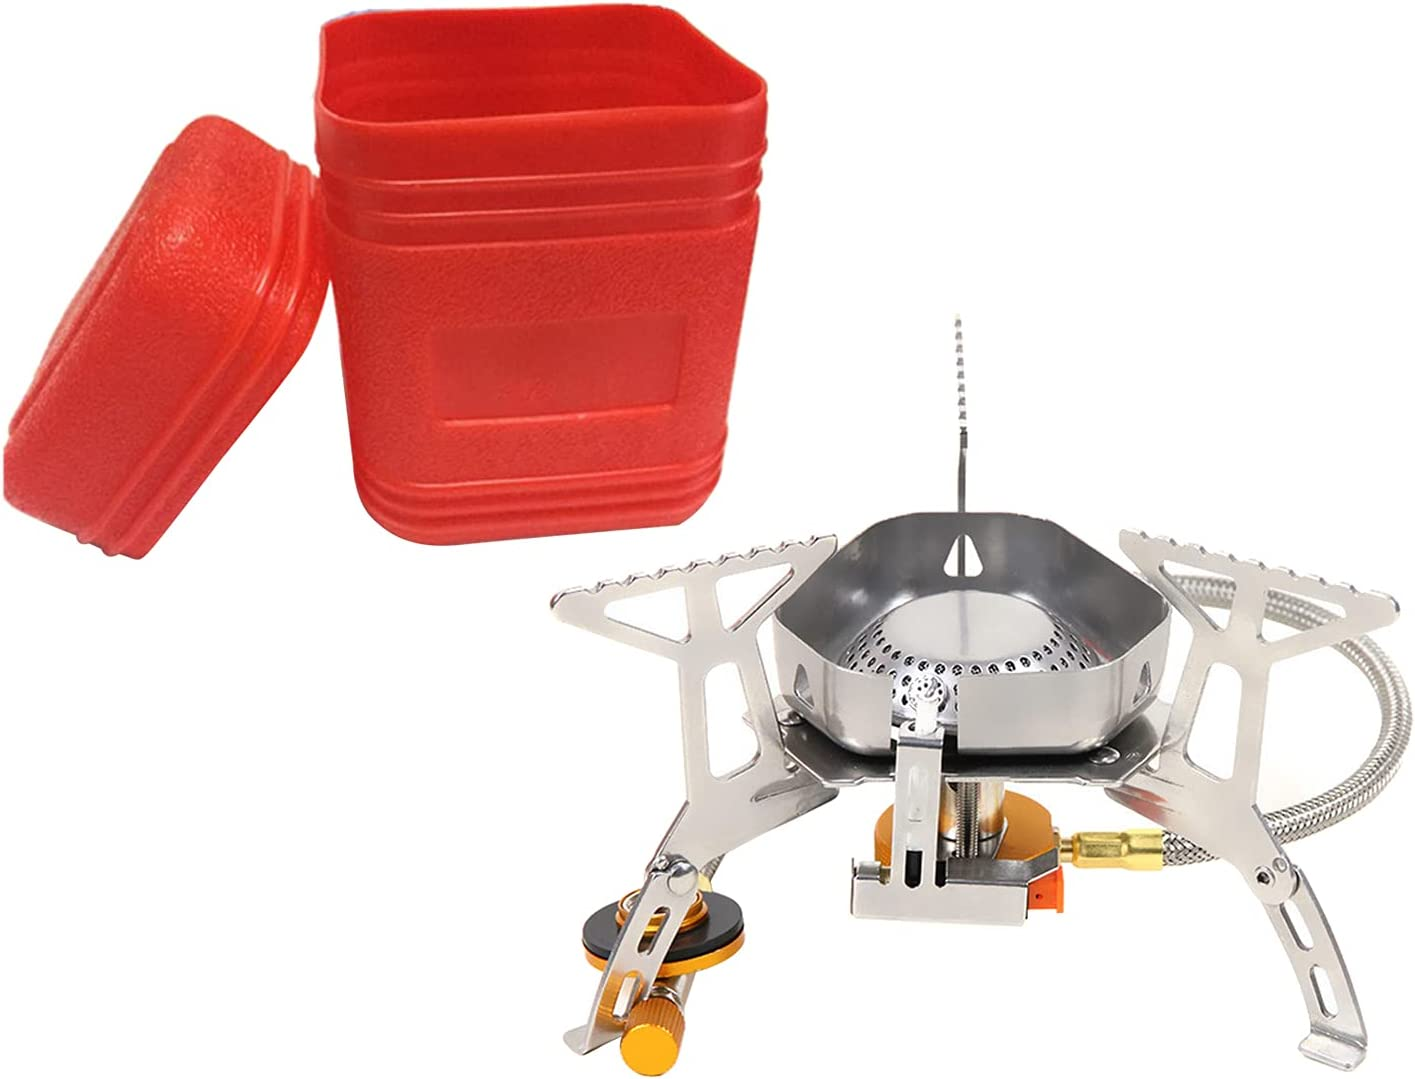 NEWMIND Finally resale start Portable Camping Gas Stove Mini S Backpacking outlet Windproof